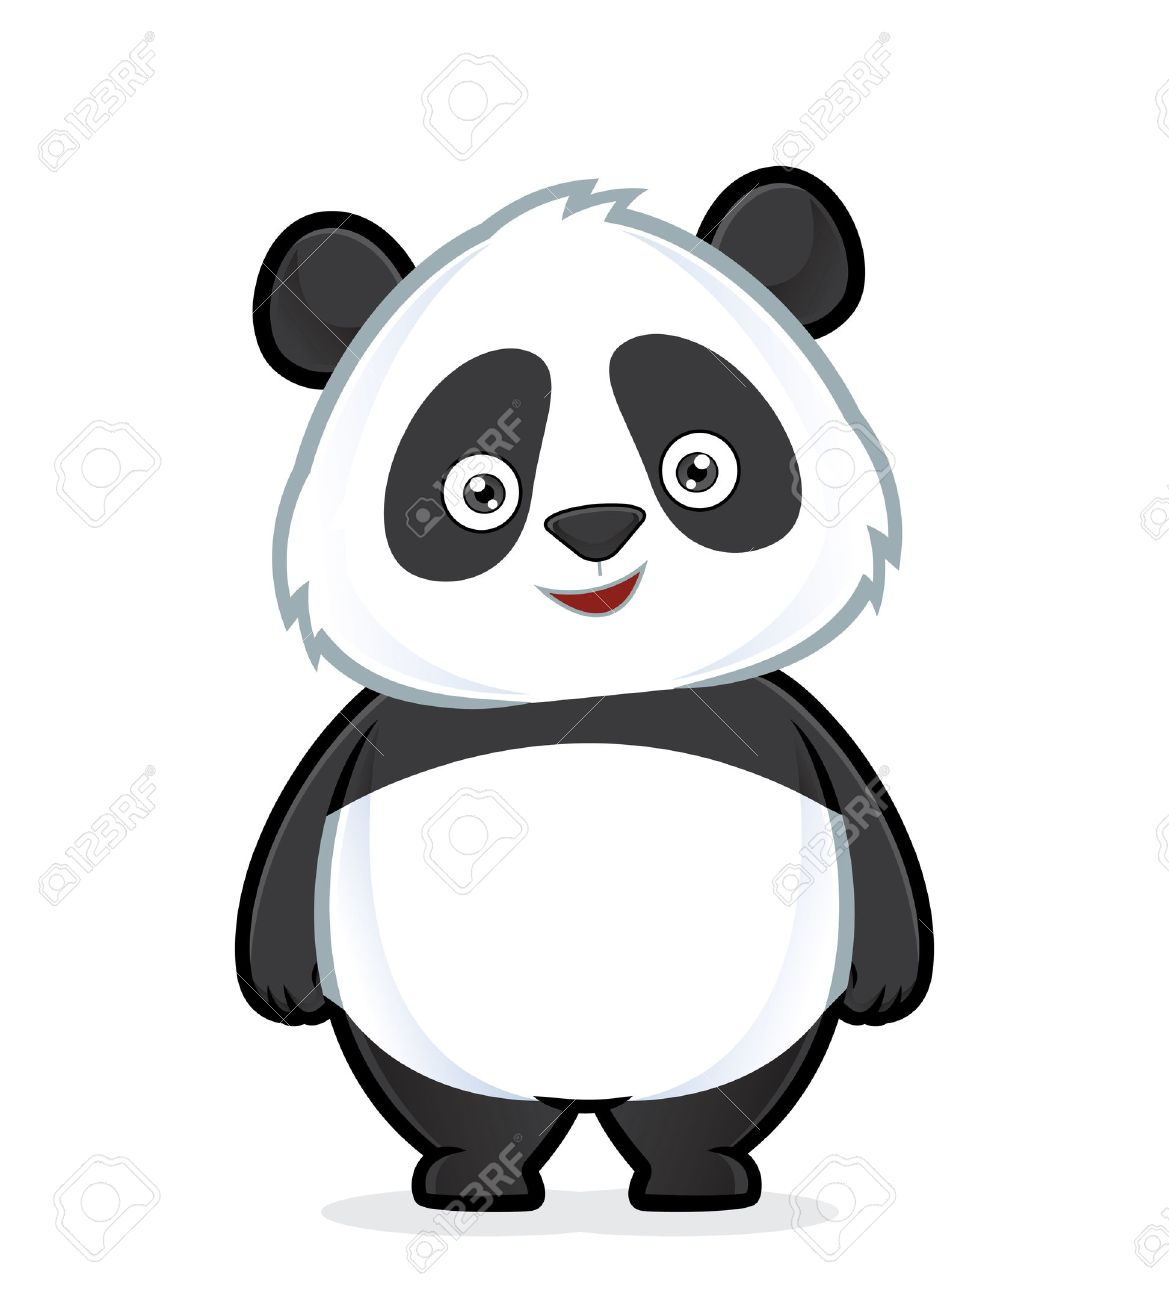 panda standing royalty free cliparts vectors and stock